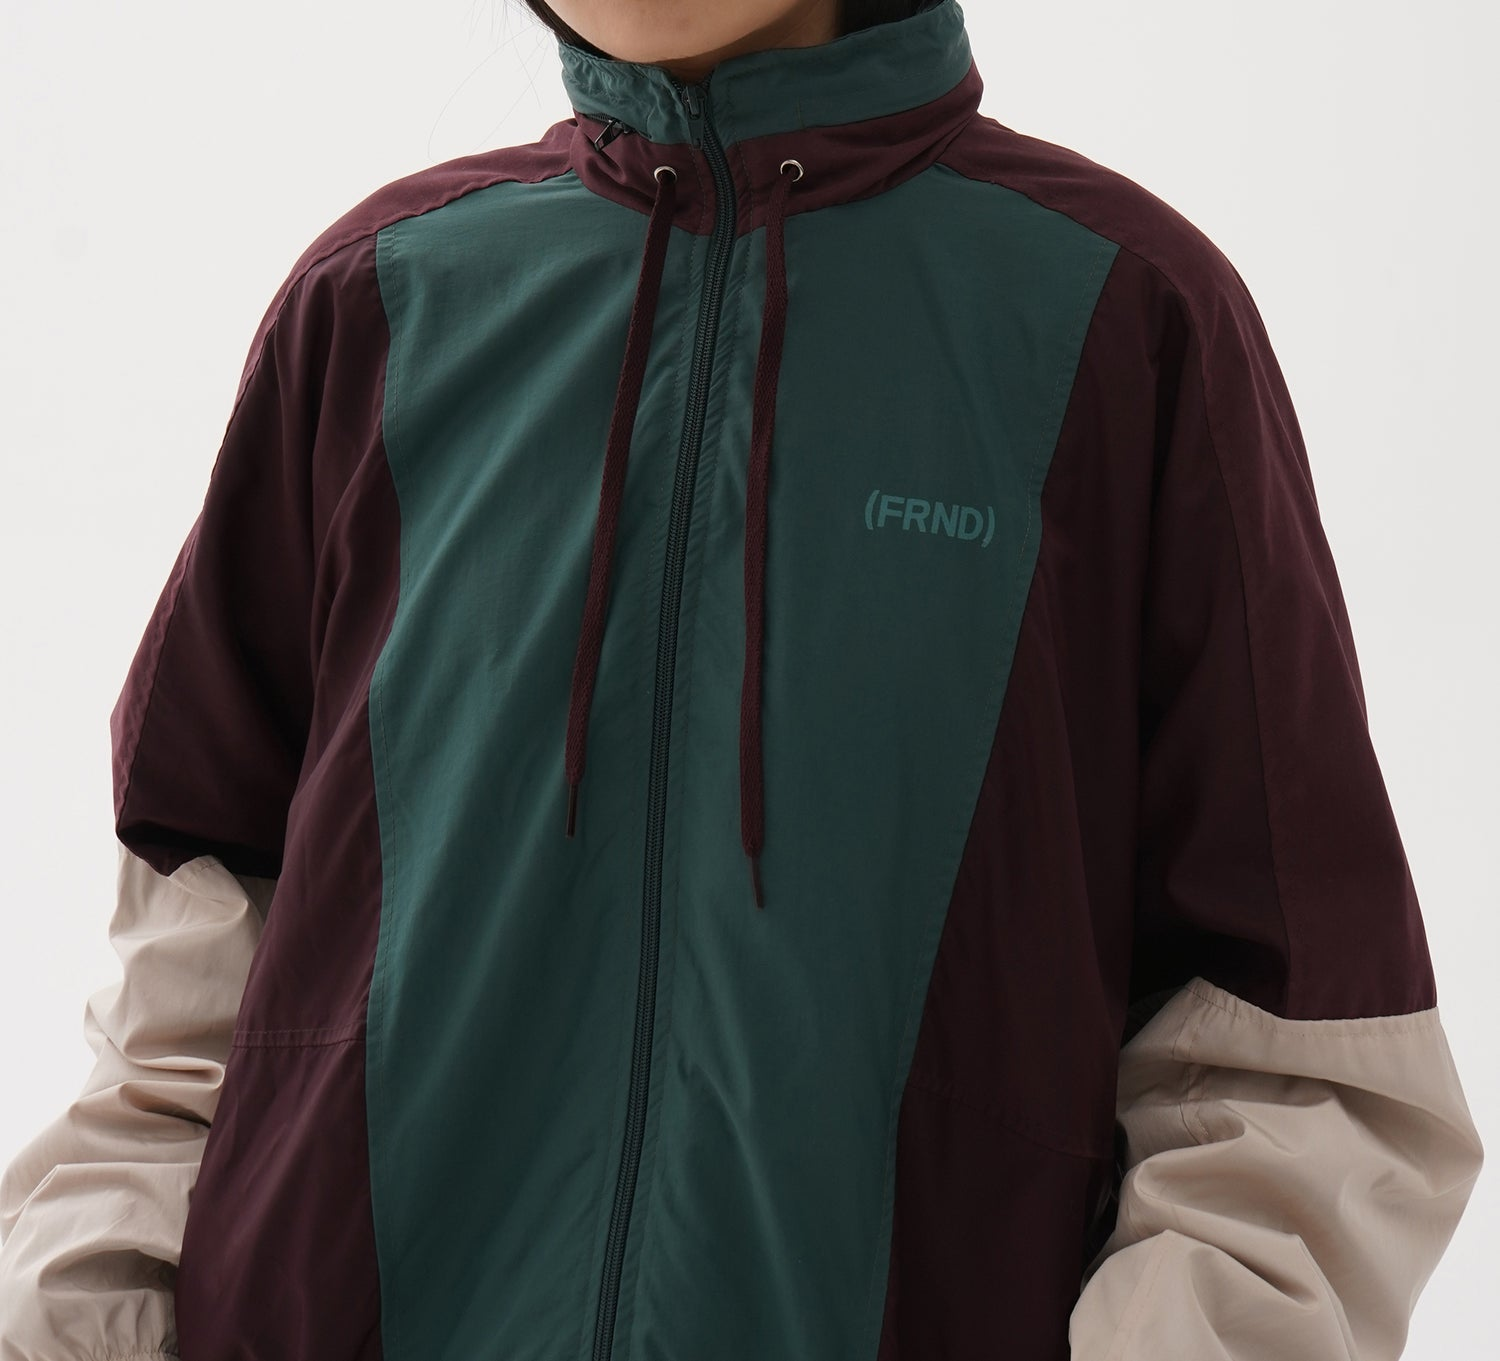 Tracksuit Jacket Maroon + Green